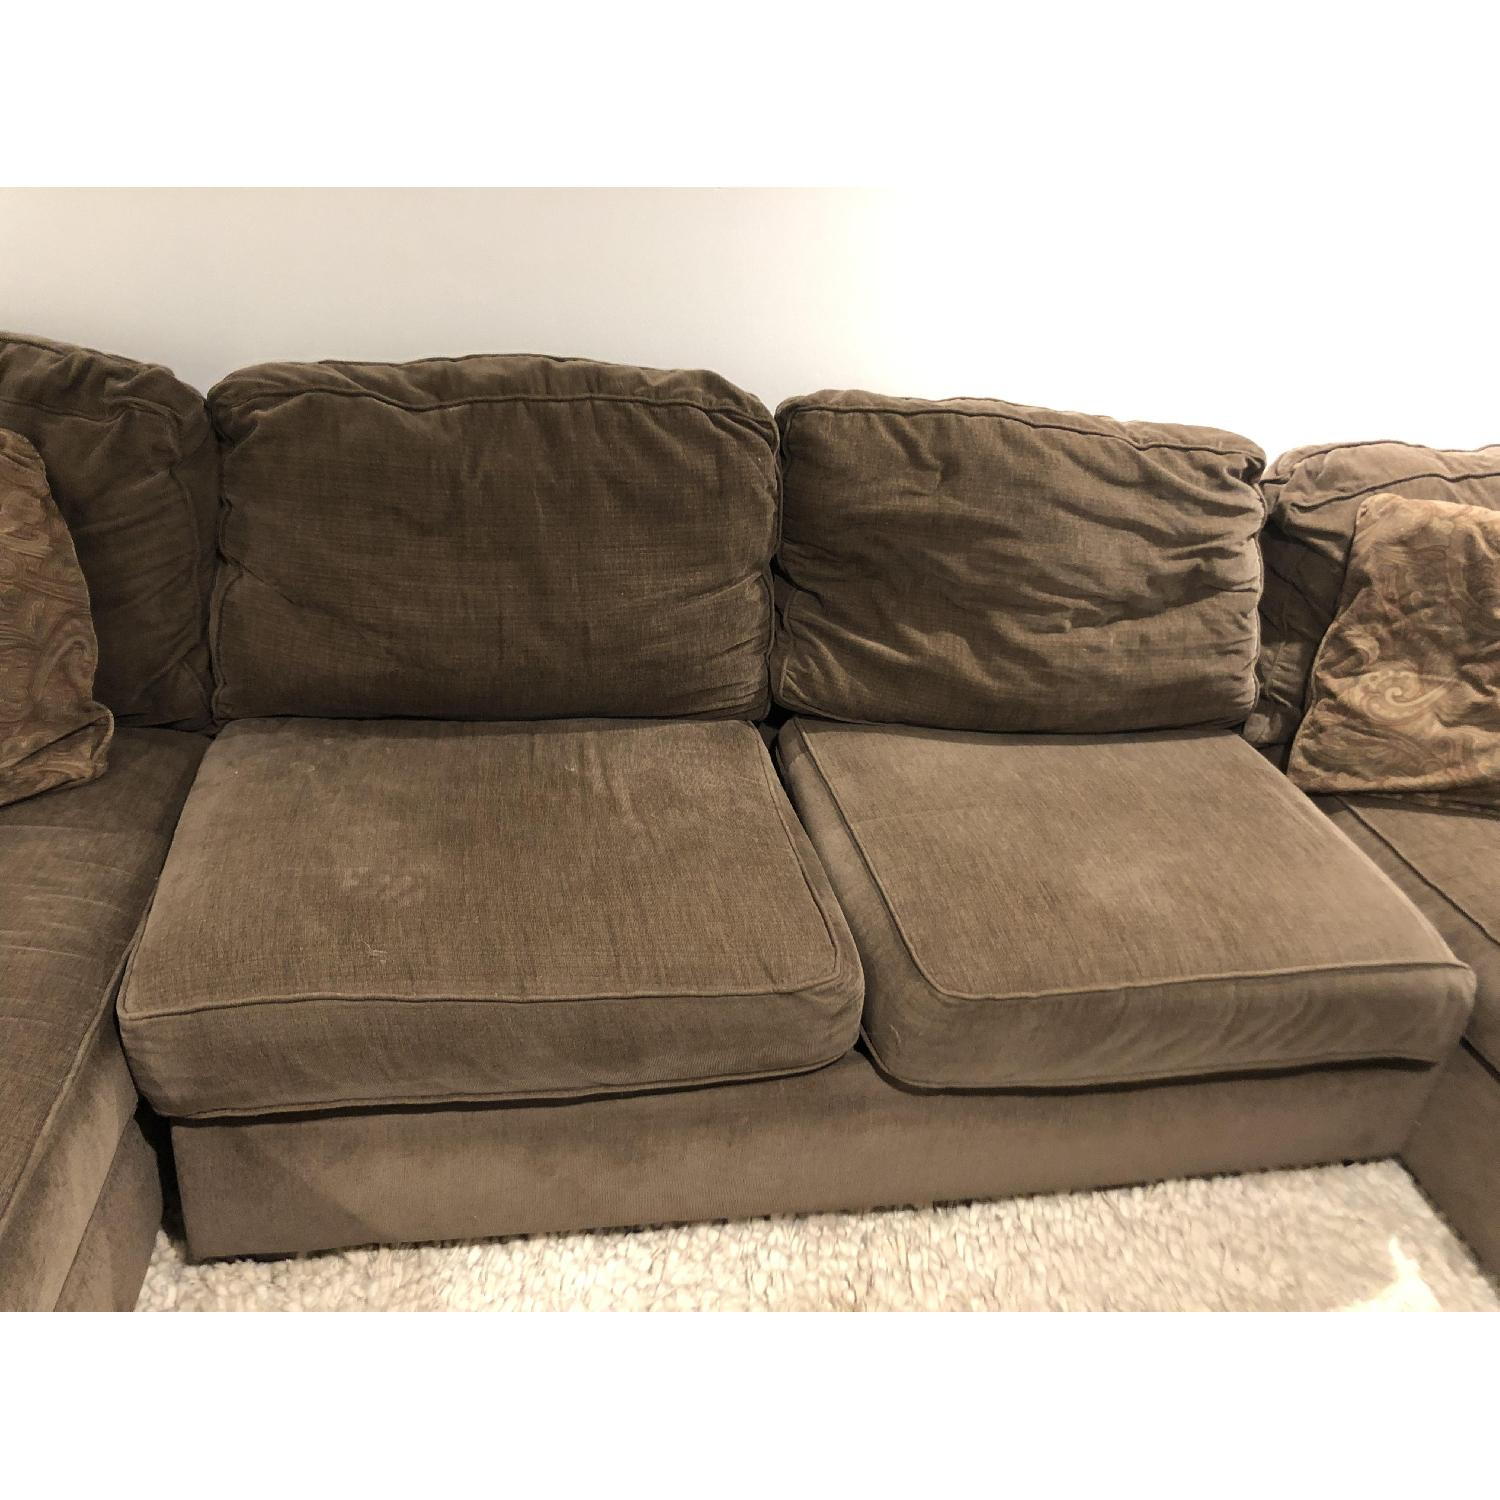 Raymour & Flanigan 3-Piece Sectional Sofa w/ 2 Chaises - image-4